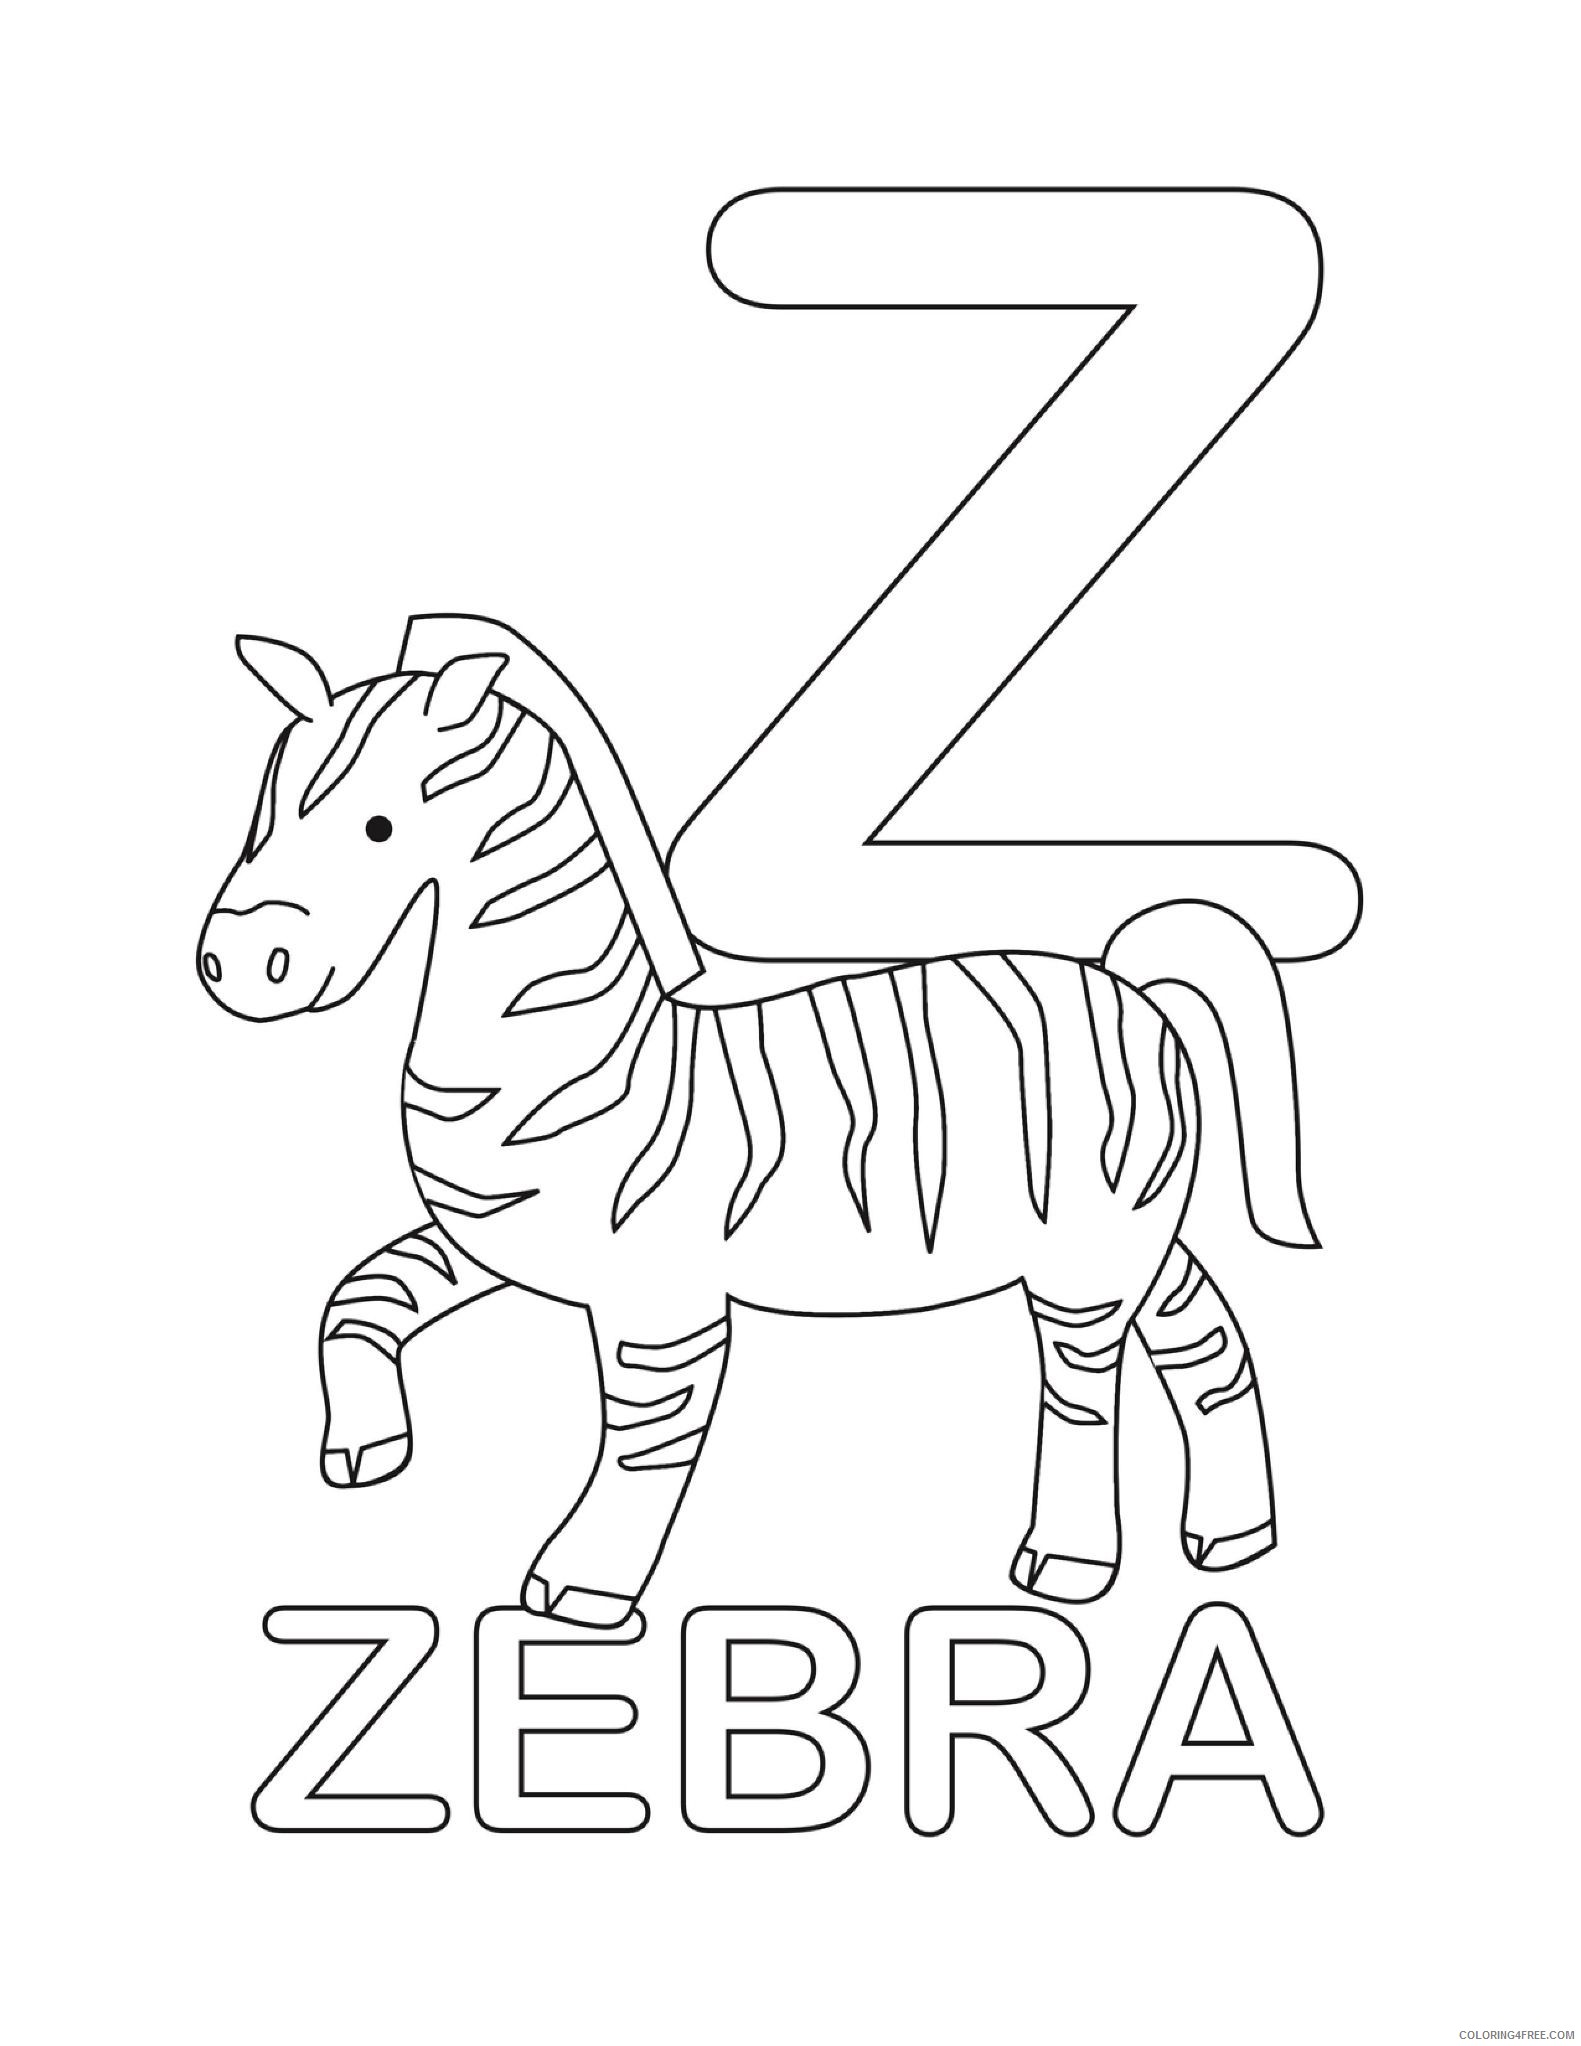 letter coloring pages z for zebra Coloring4free